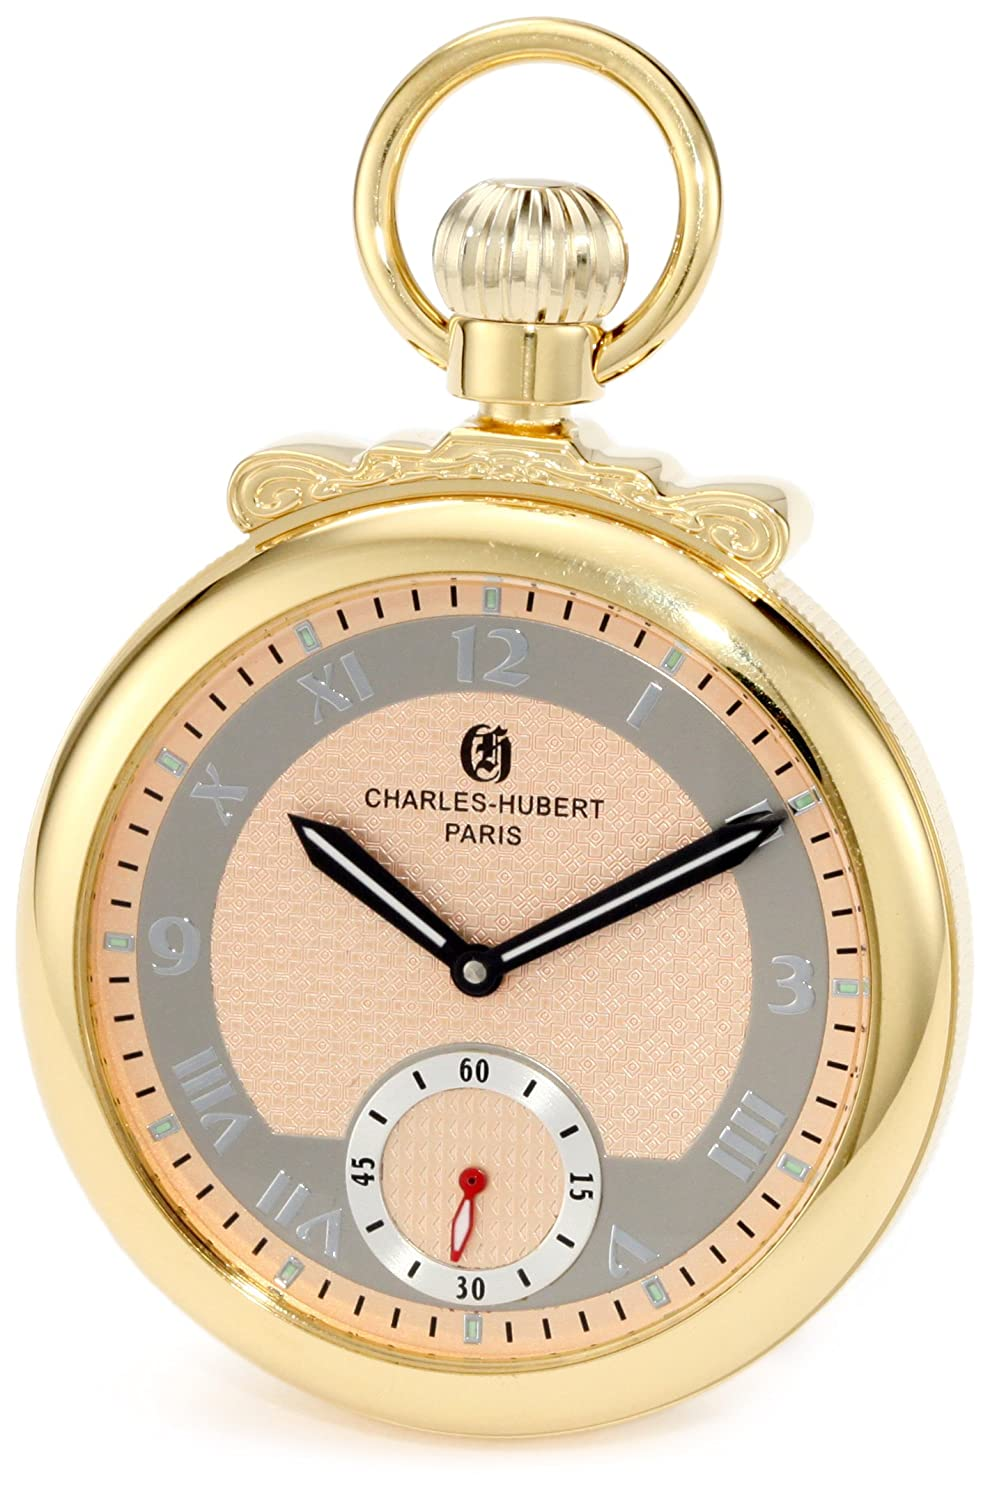 CDM product Charles-Hubert, Paris 3873-G Classic Collection Gold-Plated Polished Finish Open Face Mechanical Pocket Watch big image